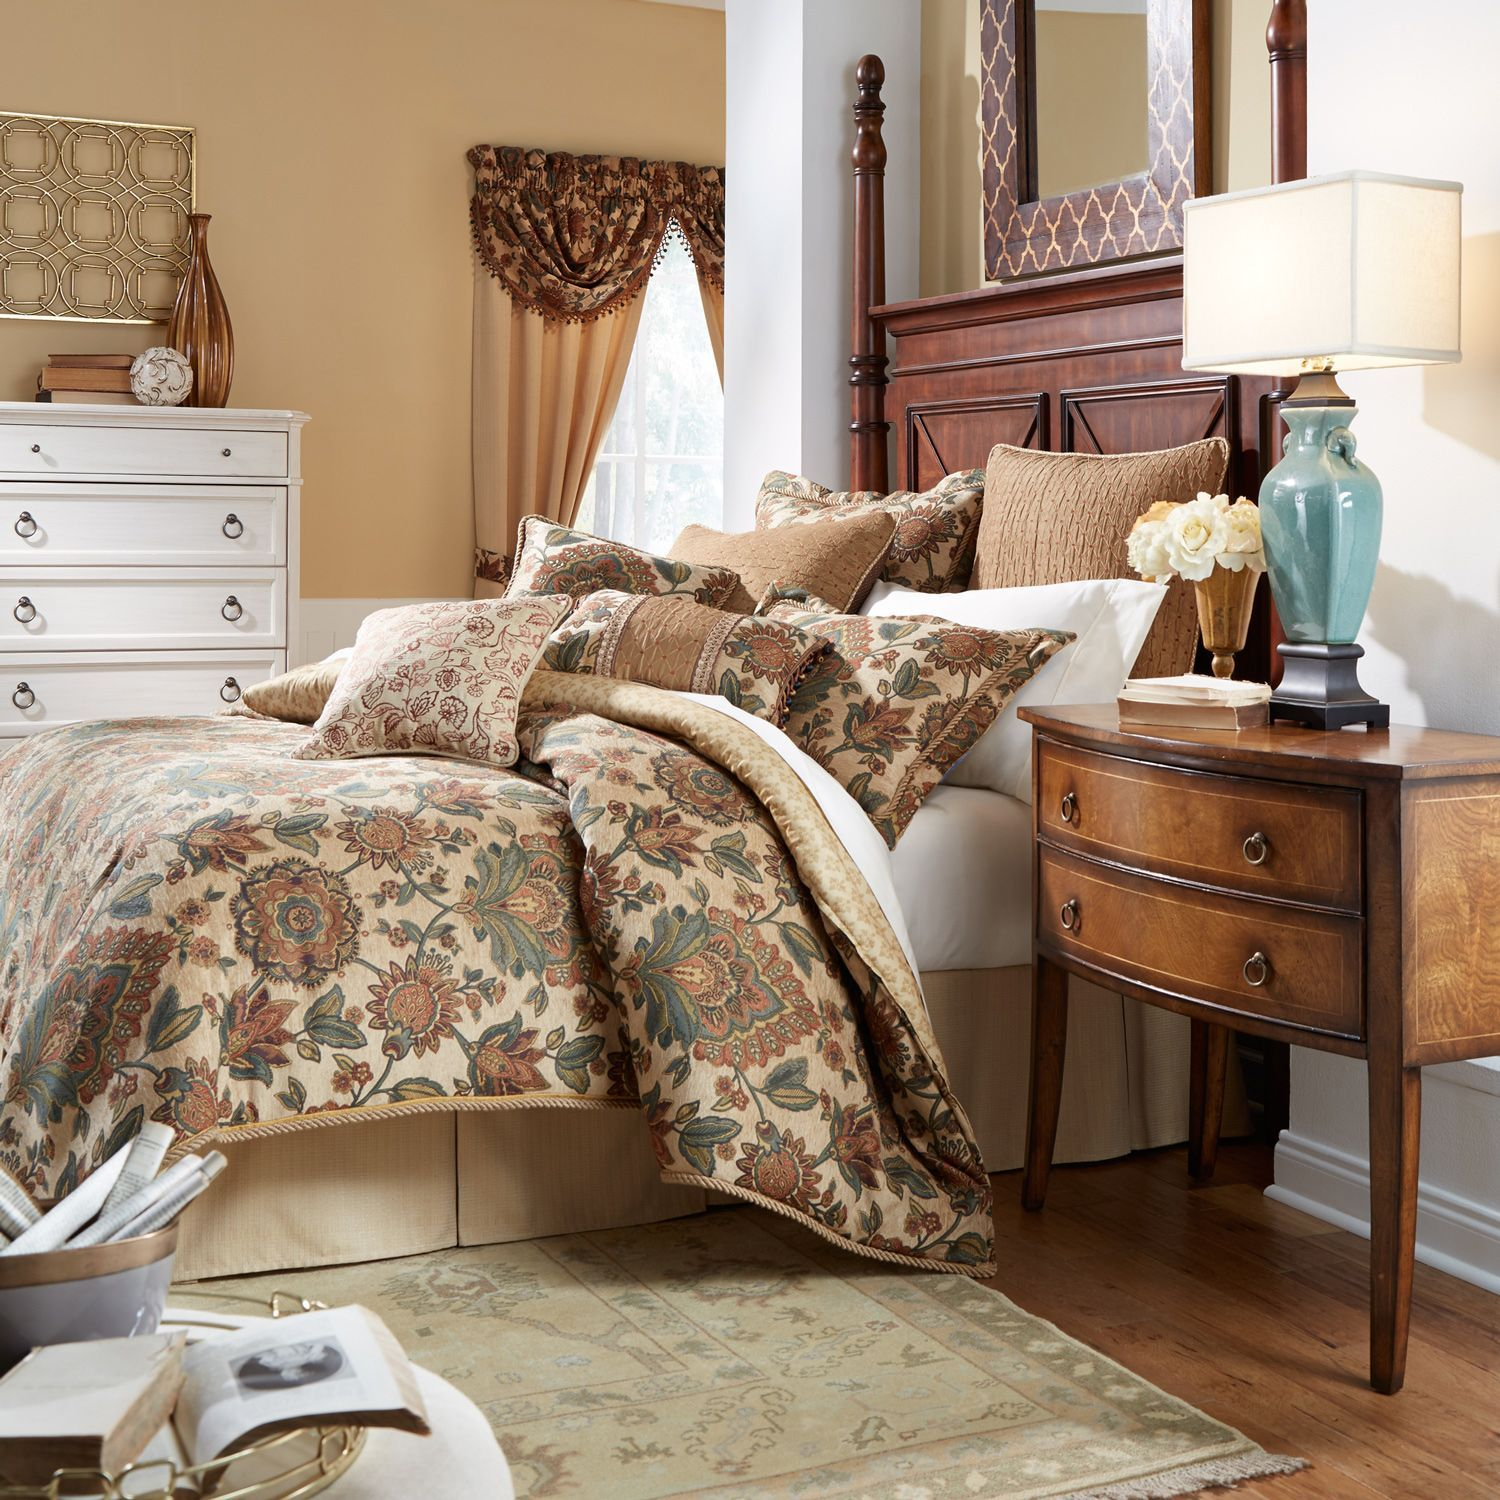 The Minka Bedding Collection is a traditional multi colored Jacobean